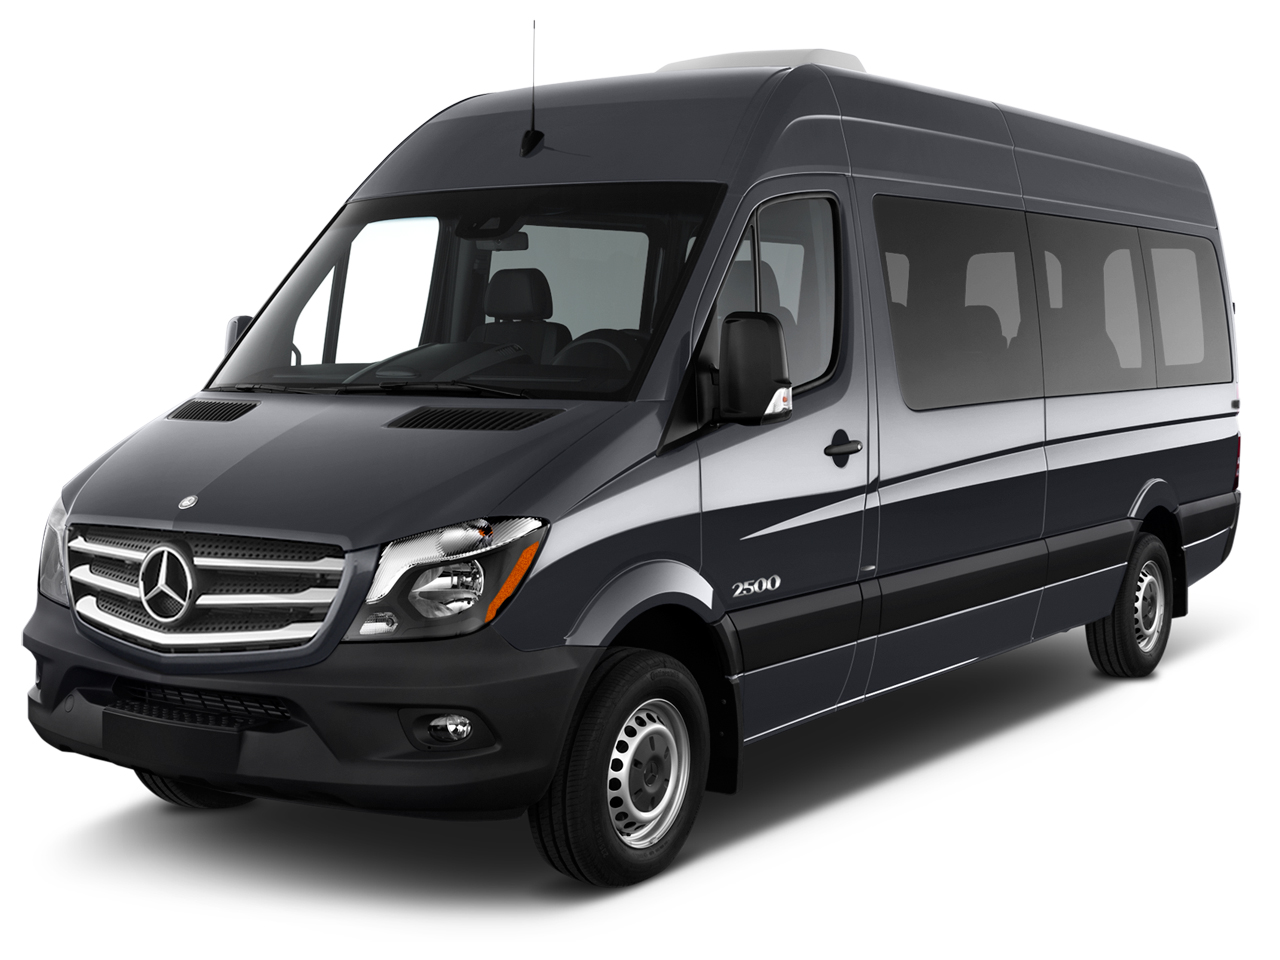 new and used mercedes benz sprinter passenger van prices photos reviews specs the car. Black Bedroom Furniture Sets. Home Design Ideas